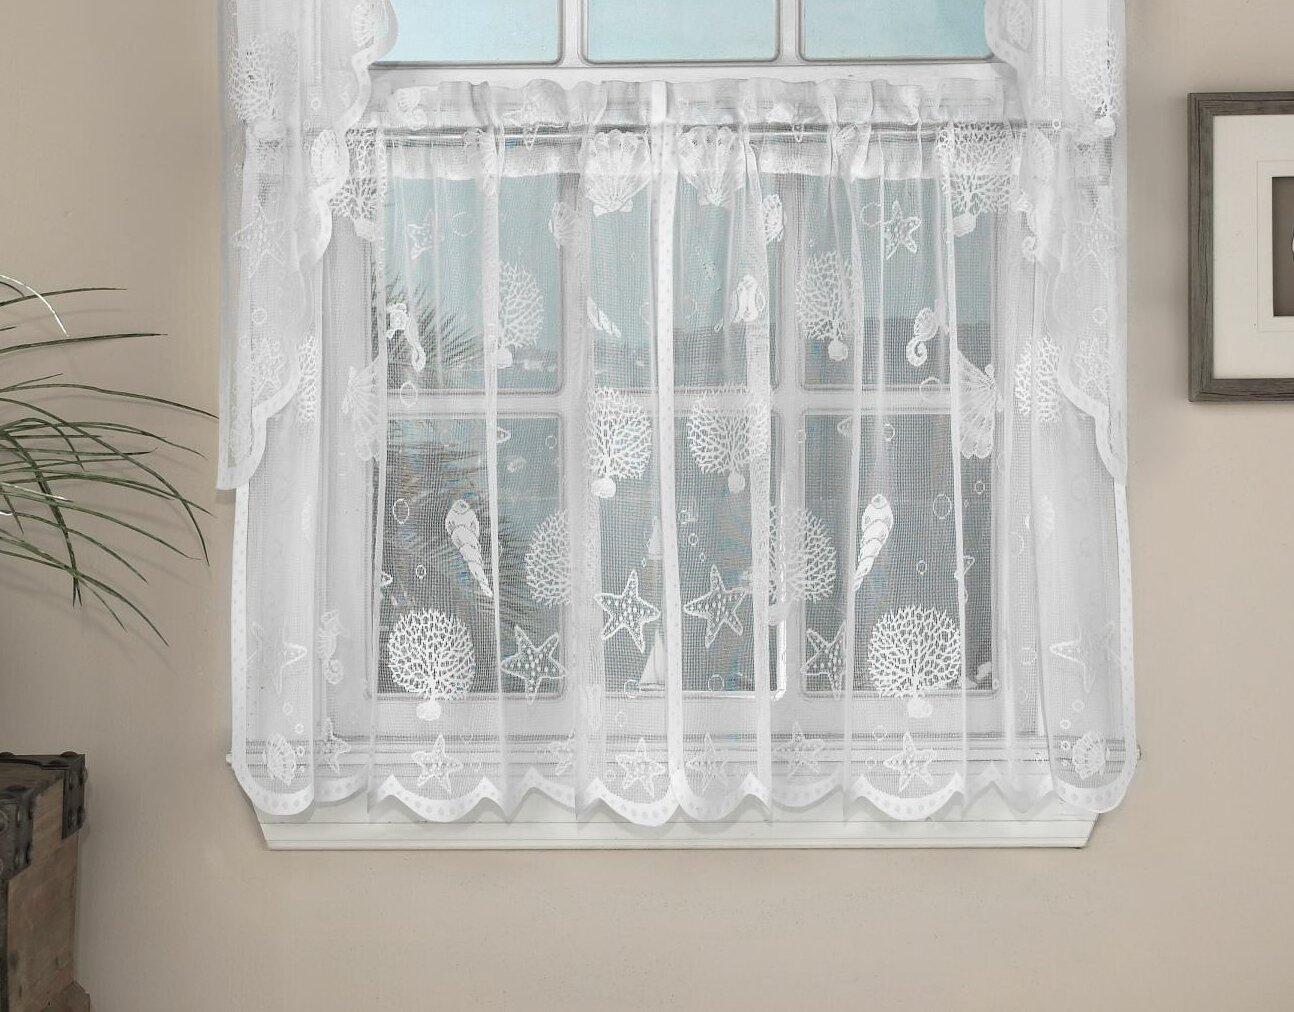 Wynter Corales De Marina Cafe Curtain Throughout Marine Life Motif Knitted Lace Window Curtain Pieces (View 16 of 20)